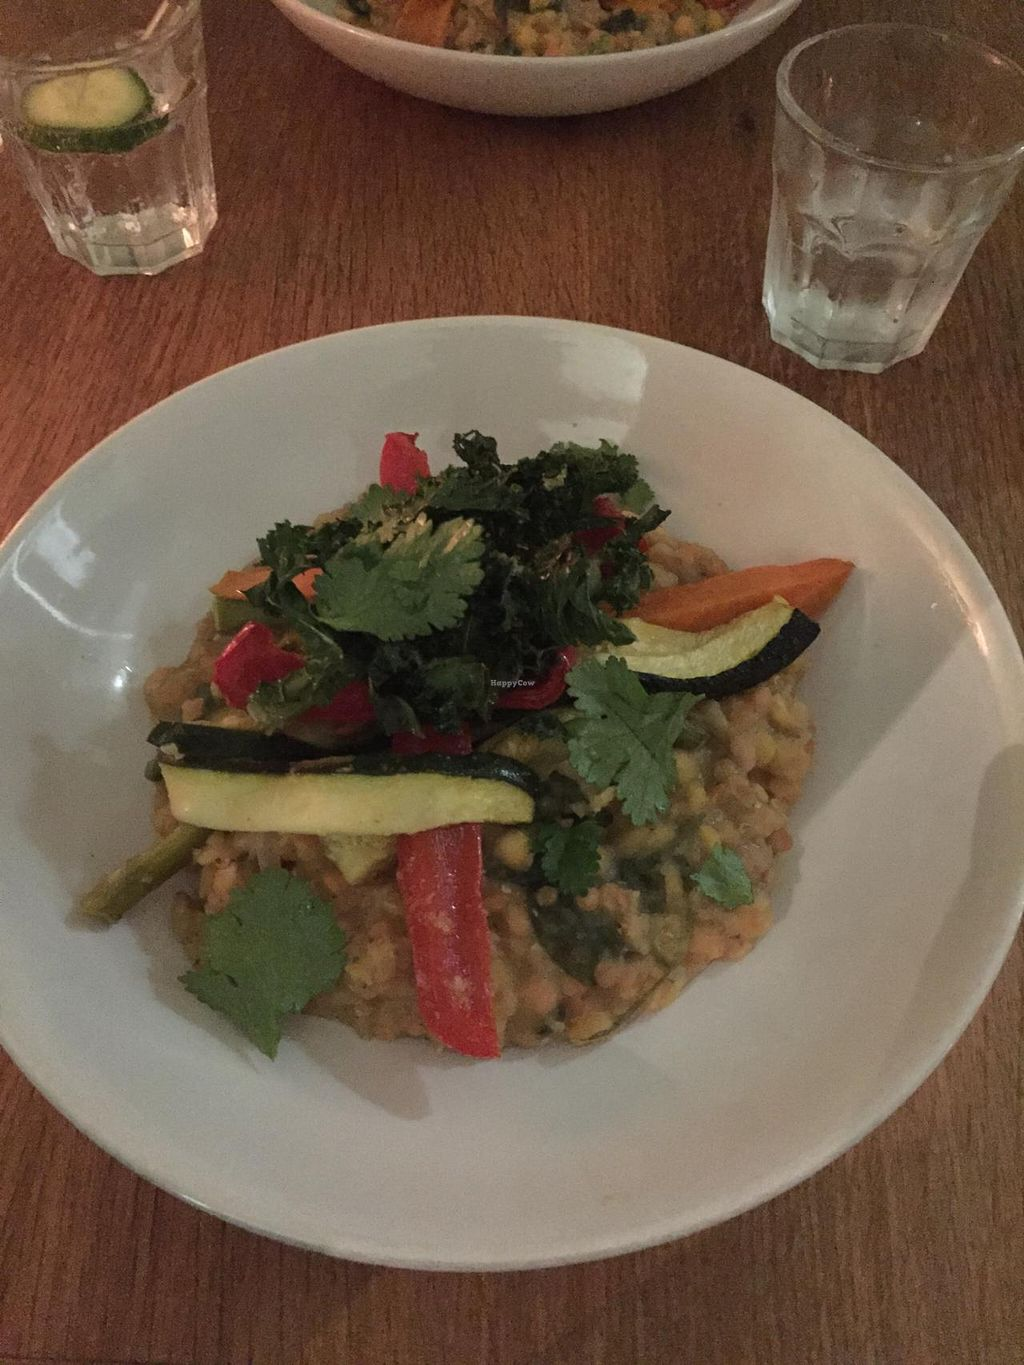 """Photo of CLOSED: Black Bear Cafe  by <a href=""""/members/profile/sriblet"""">sriblet</a> <br/>Vegan Garlic Lentils with Roasted Vegetables and Crispy Kale <br/> November 30, 2014  - <a href='/contact/abuse/image/52889/86865'>Report</a>"""